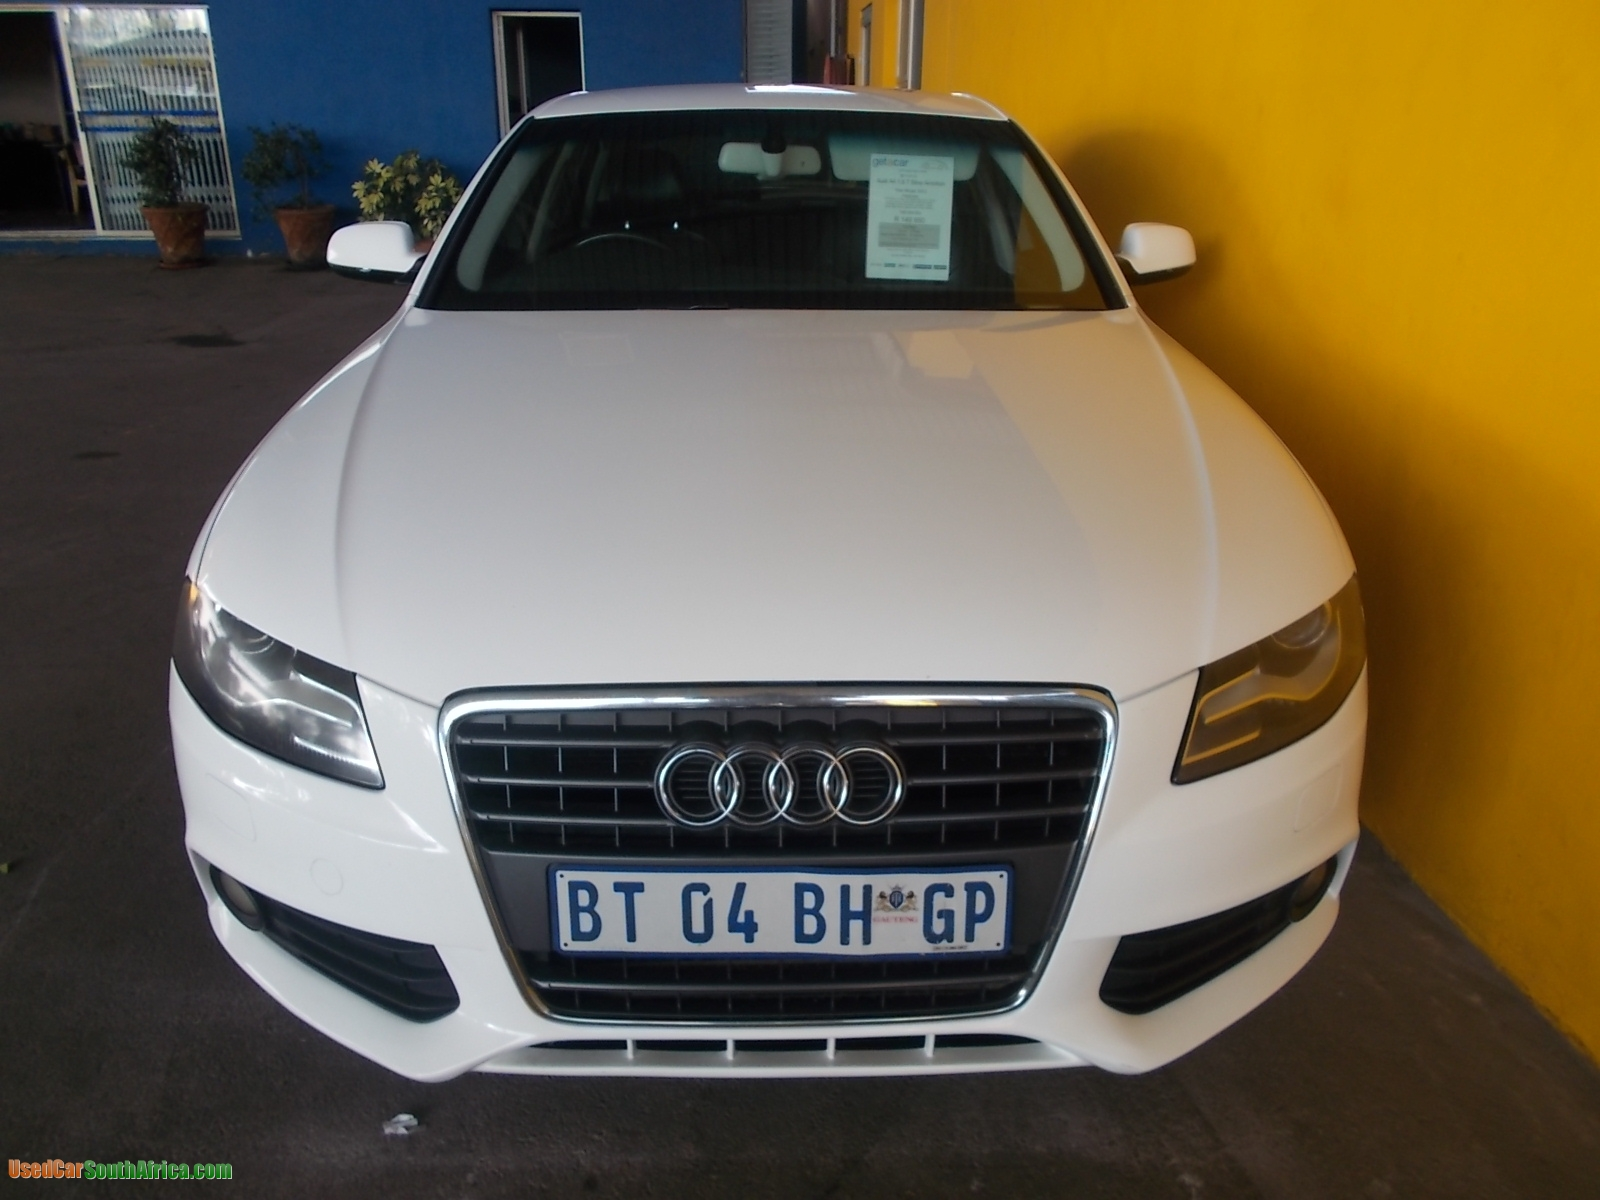 2012 audi a4 black leather used car for sale in pretoria central gauteng south africa usedcarsouthafrica 2